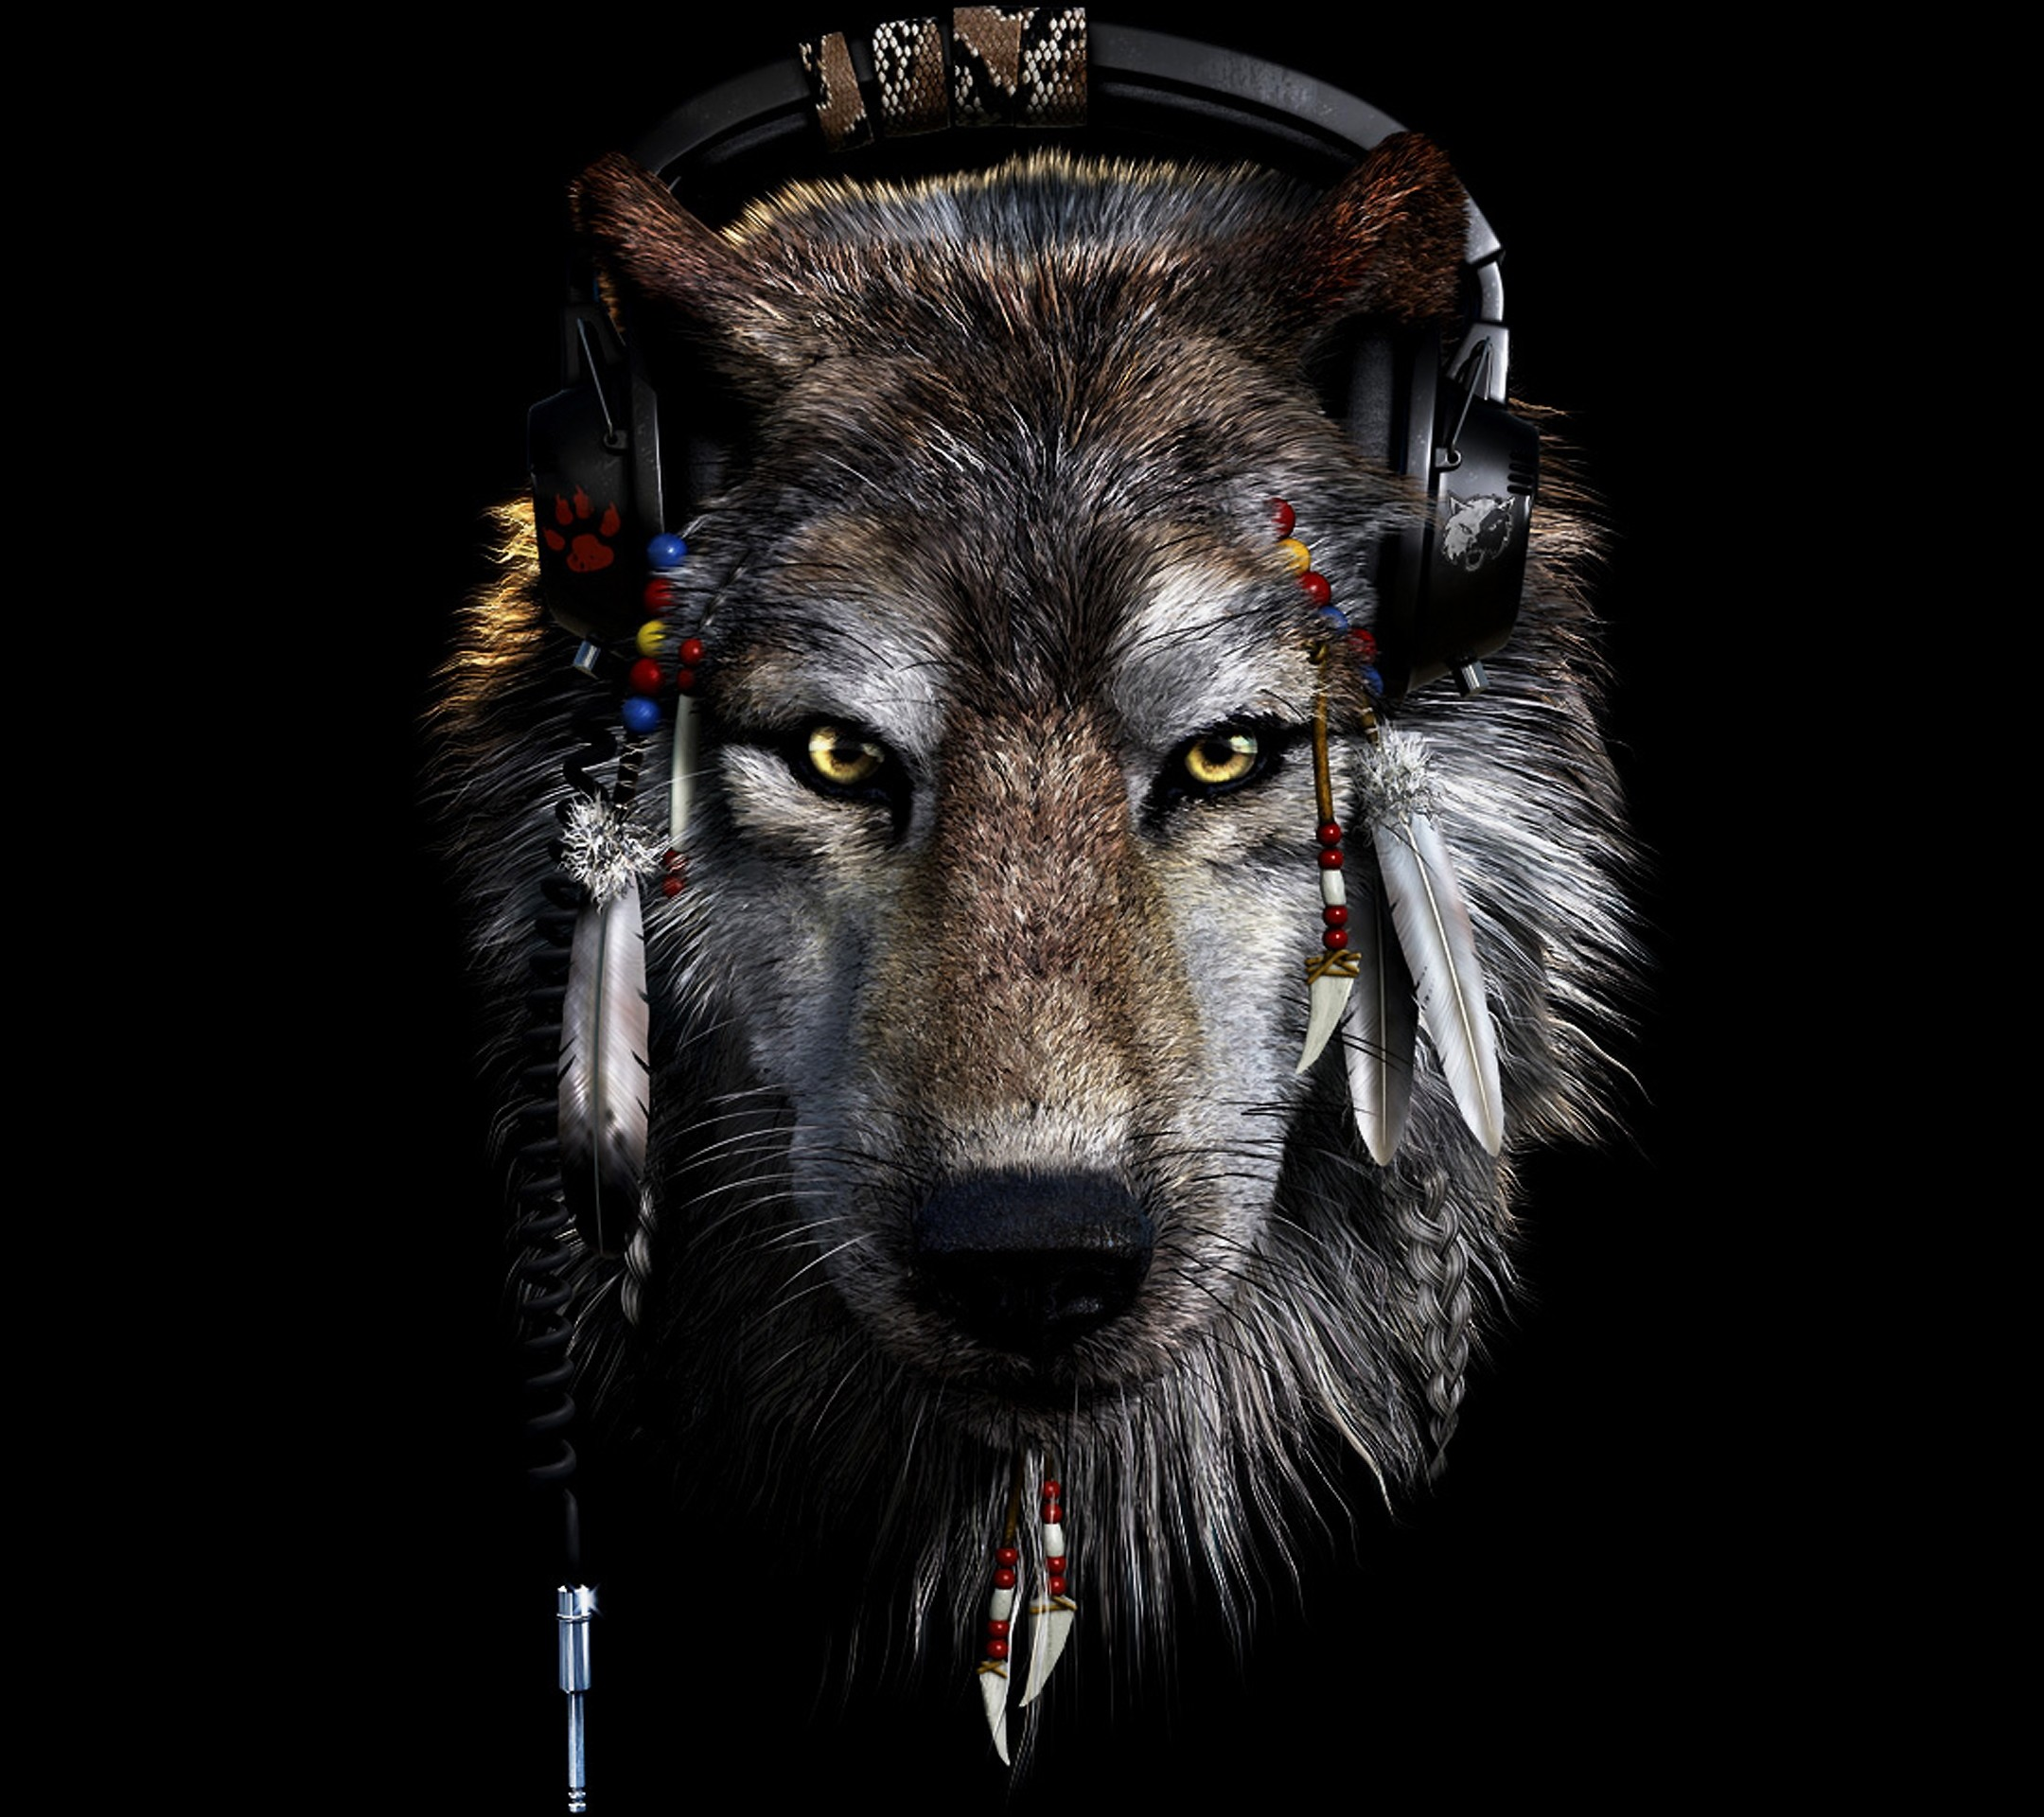 Wolves wallpaper 63 images 1920x1080 1920x1080 download indian feathers black drawing blonde girl wolves wolf wallpaper at dark wallpapers voltagebd Gallery